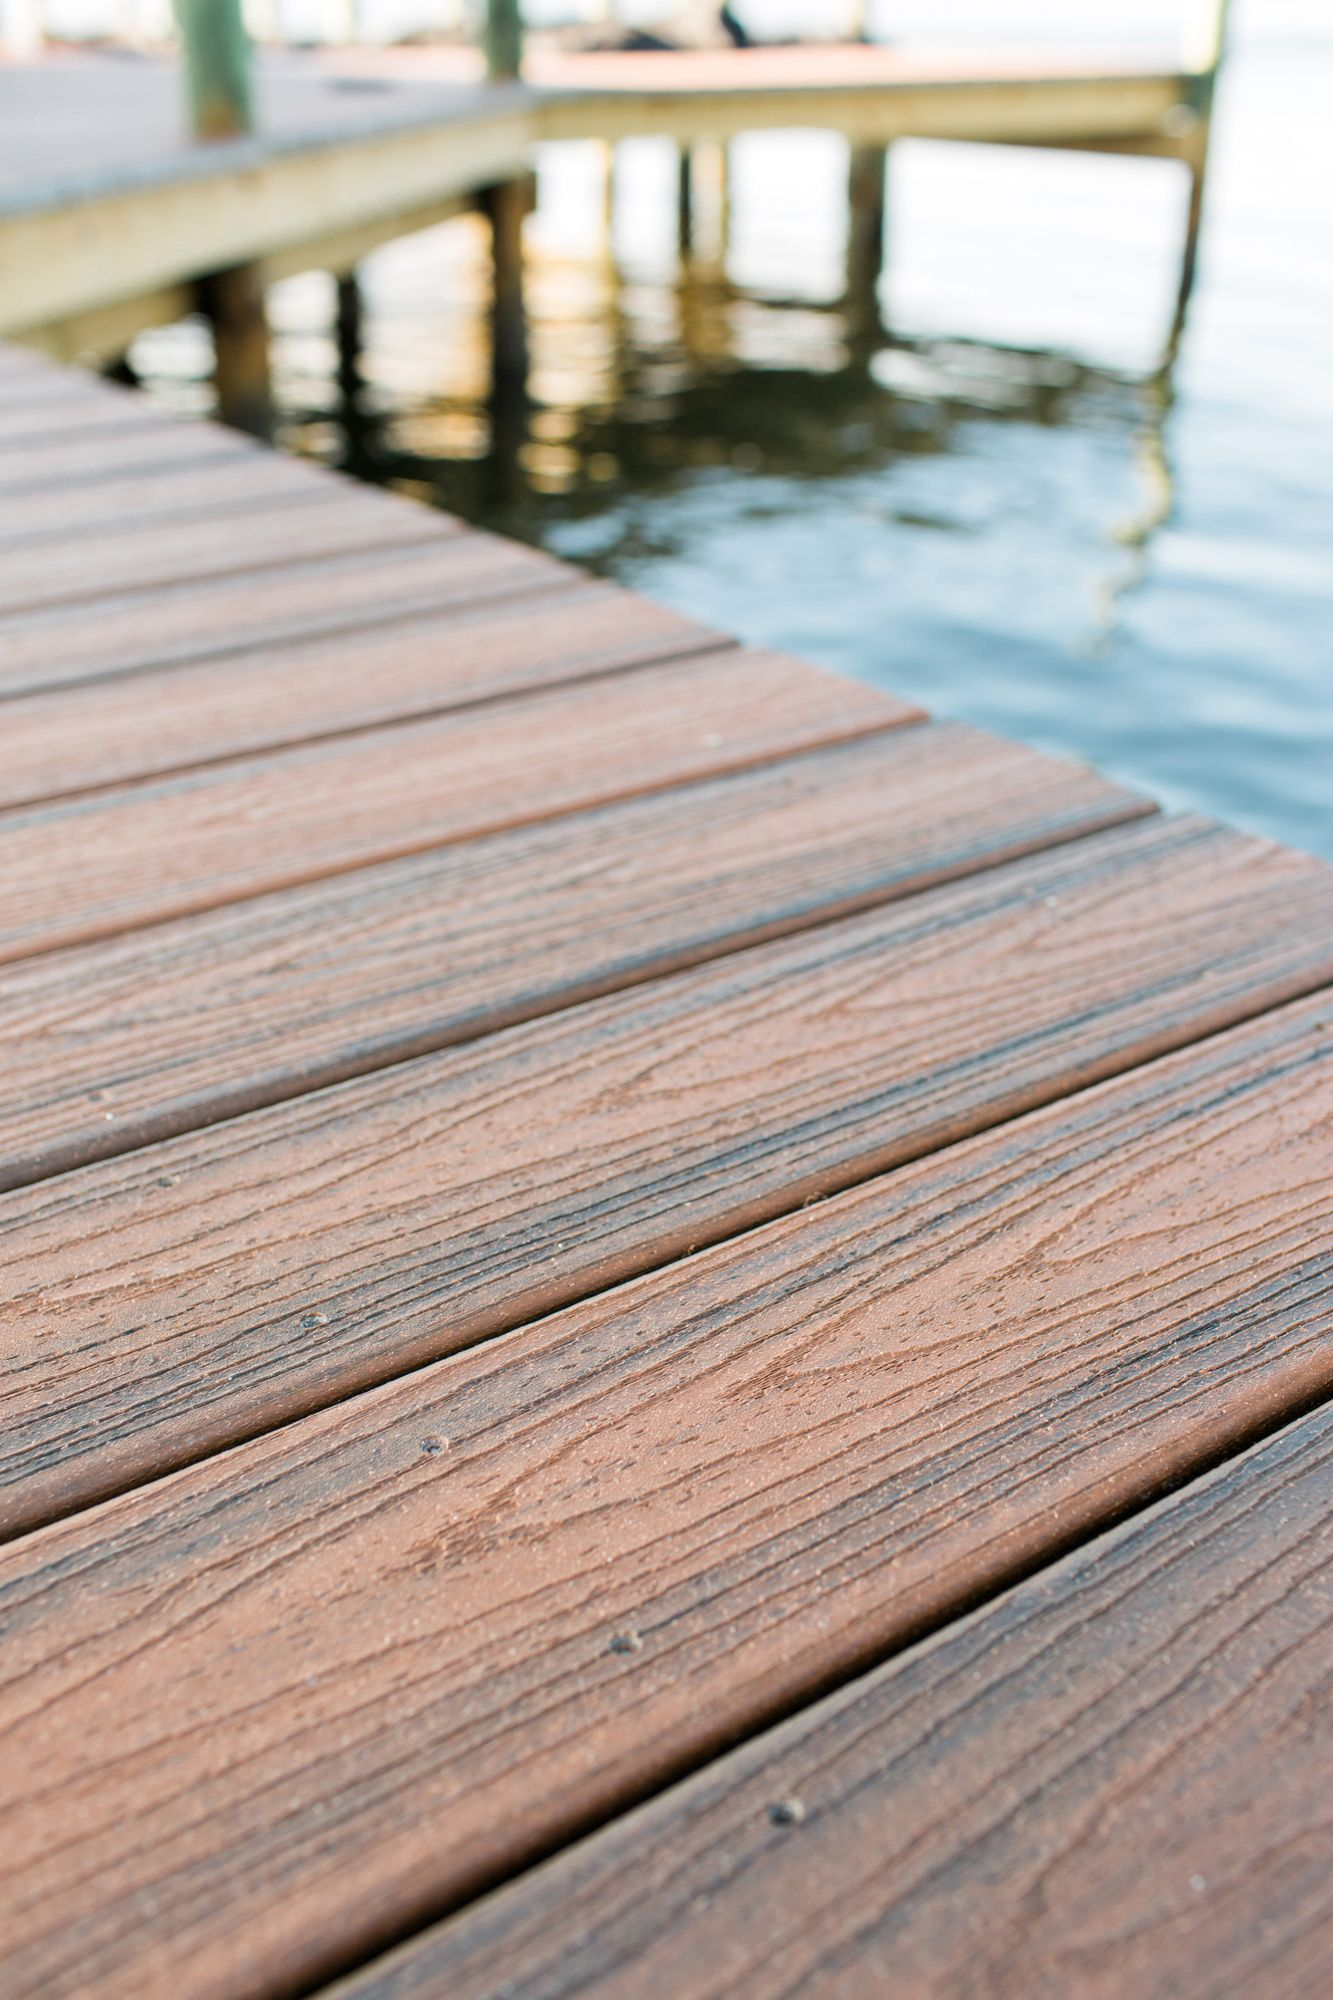 Trex Transcend Decking In Spiced Rum Was Used On The Dock Of The